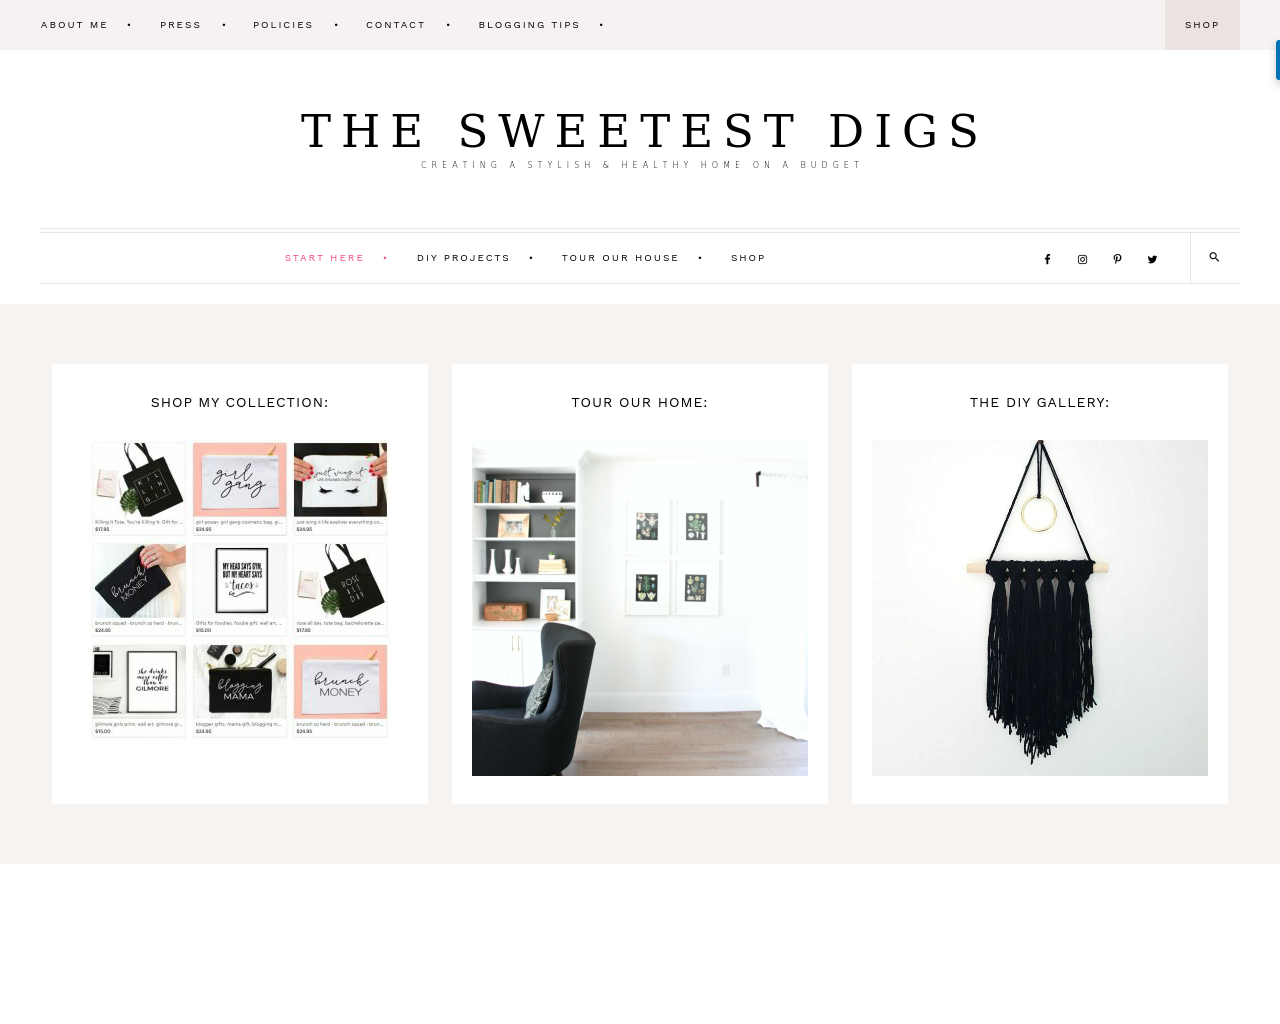 The-Sweetest-Digs-Advertising-Reviews-Pricing